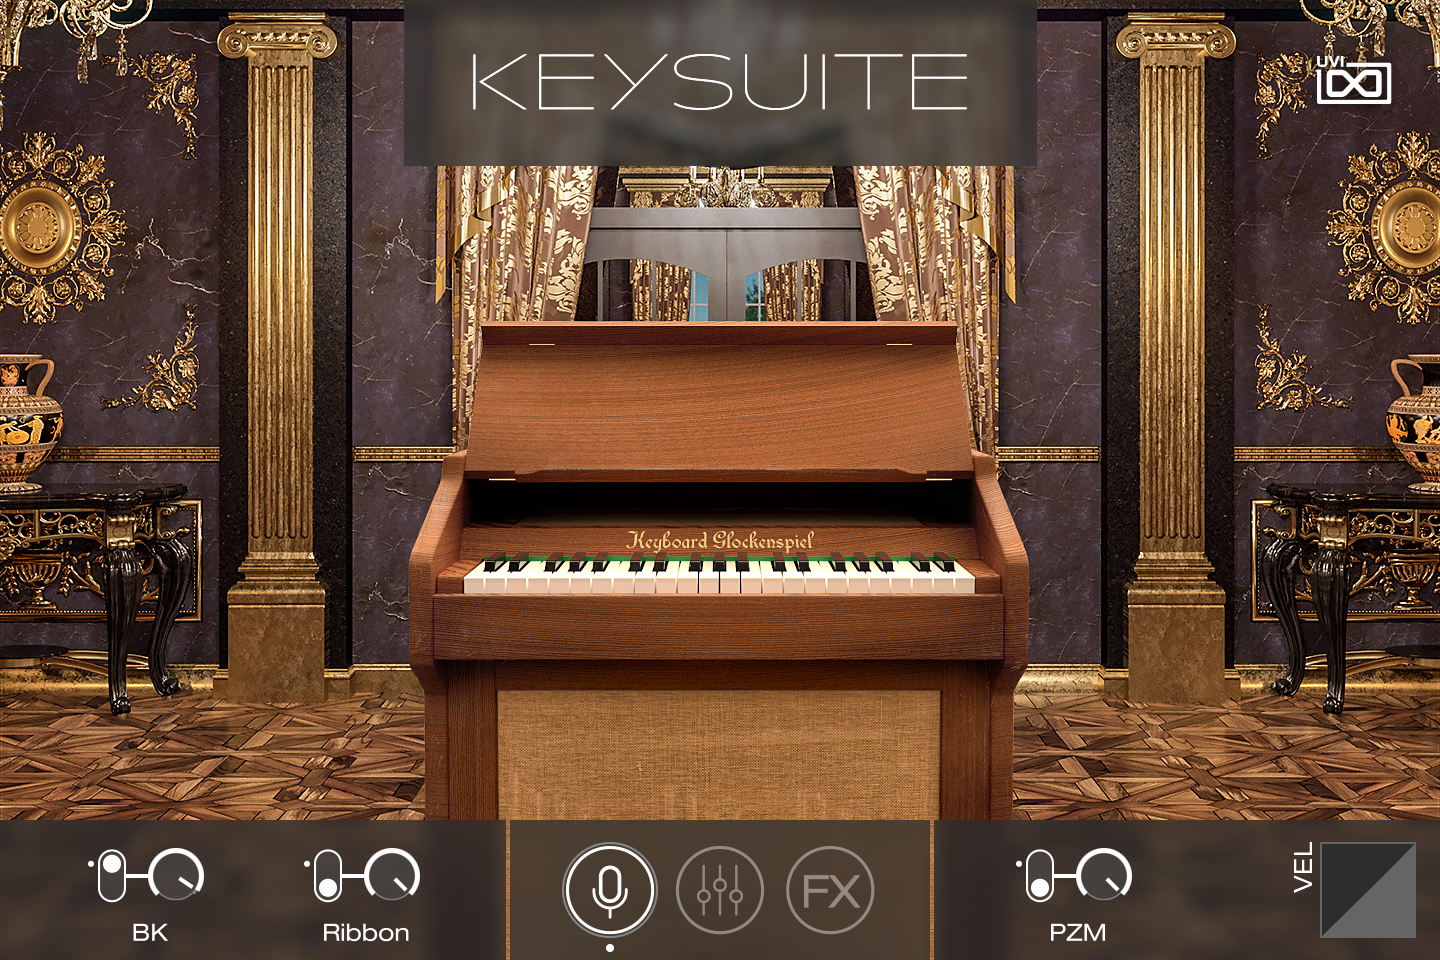 UVI Key Suite Acoustic | Keyboard Glockenspiel Main